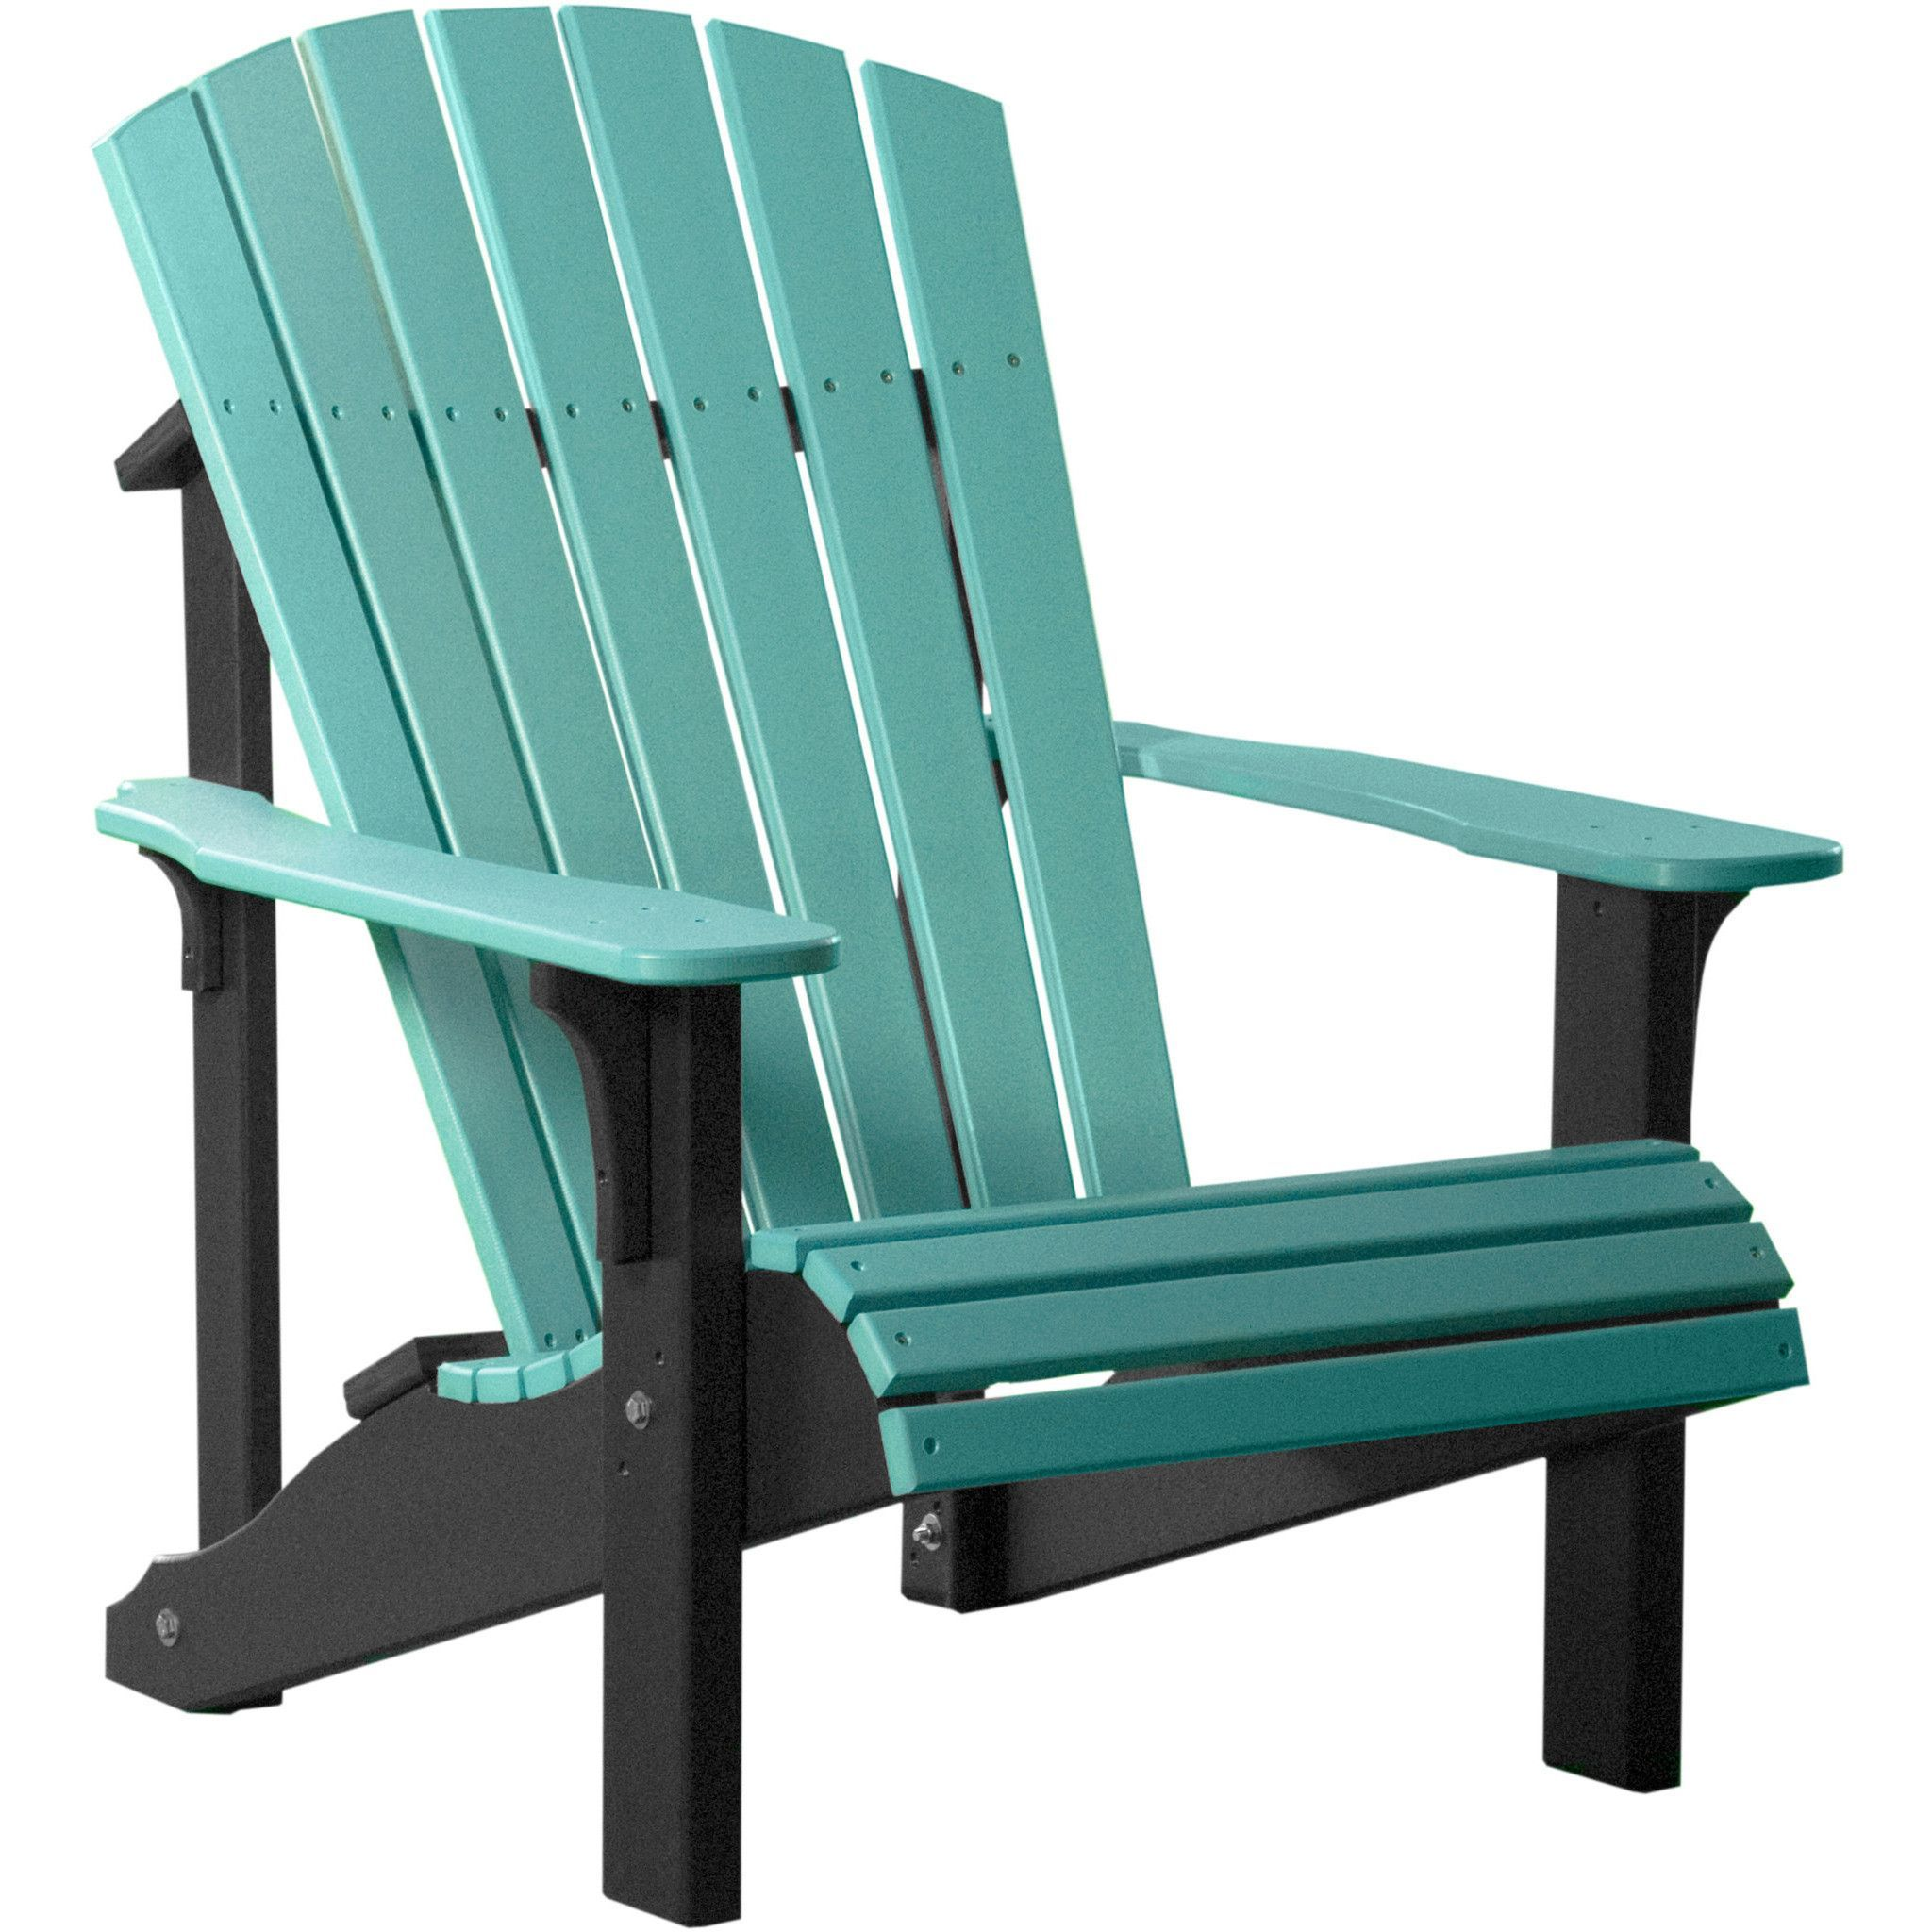 recycled plastic adirondack chairs. luxcraft deluxe recycled plastic adirondack chair chairs